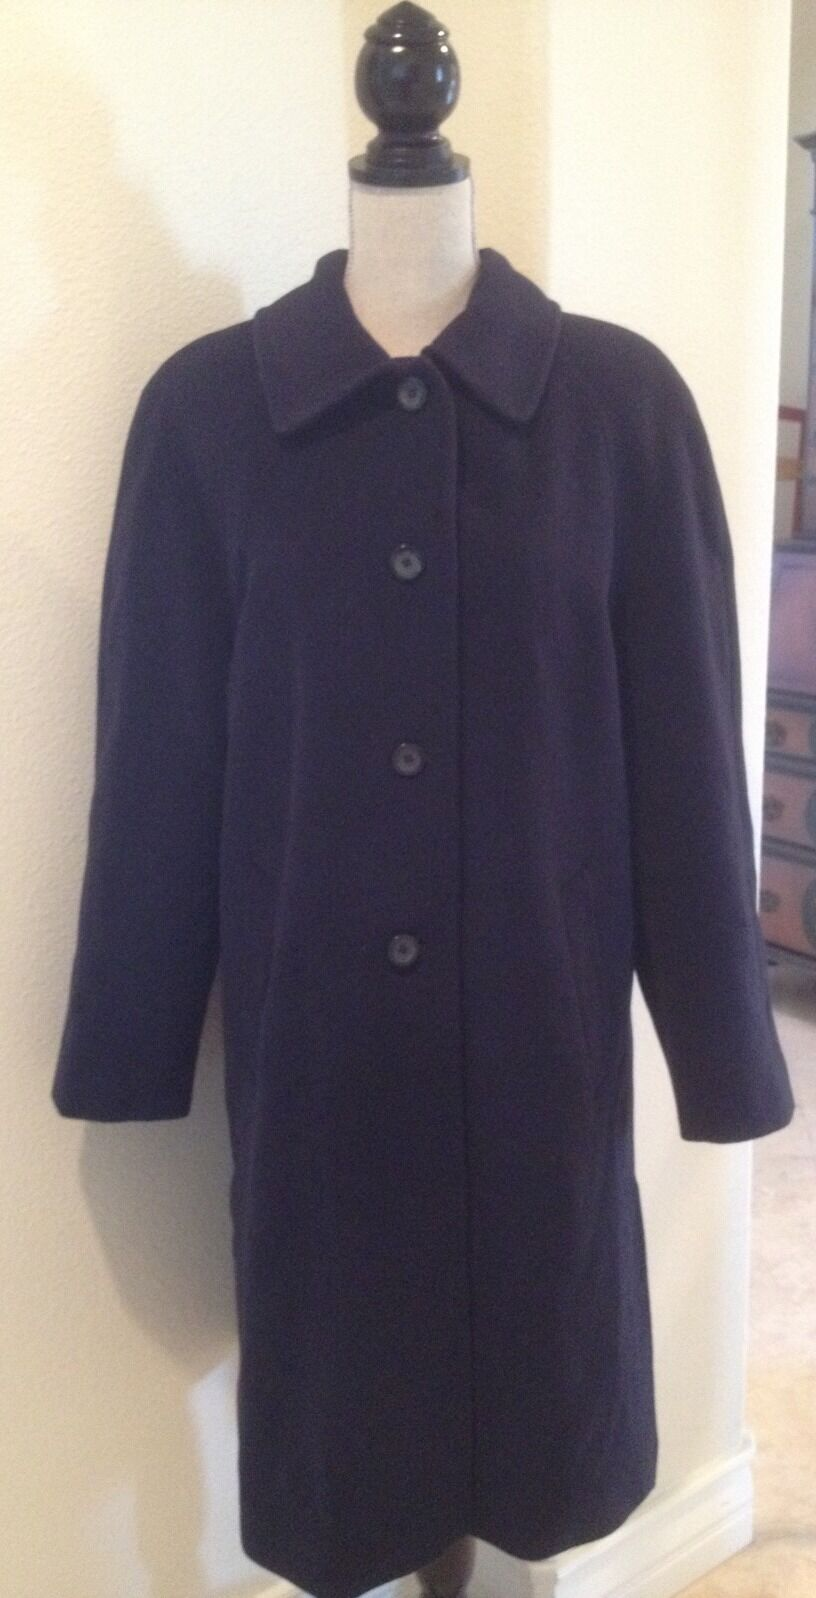 46c407d4 ADA PARINI Vtg Navy bluee Wool Wool Wool Coat CASHMERE Virgin Wool Angora  Blend 12-14 99fb8b